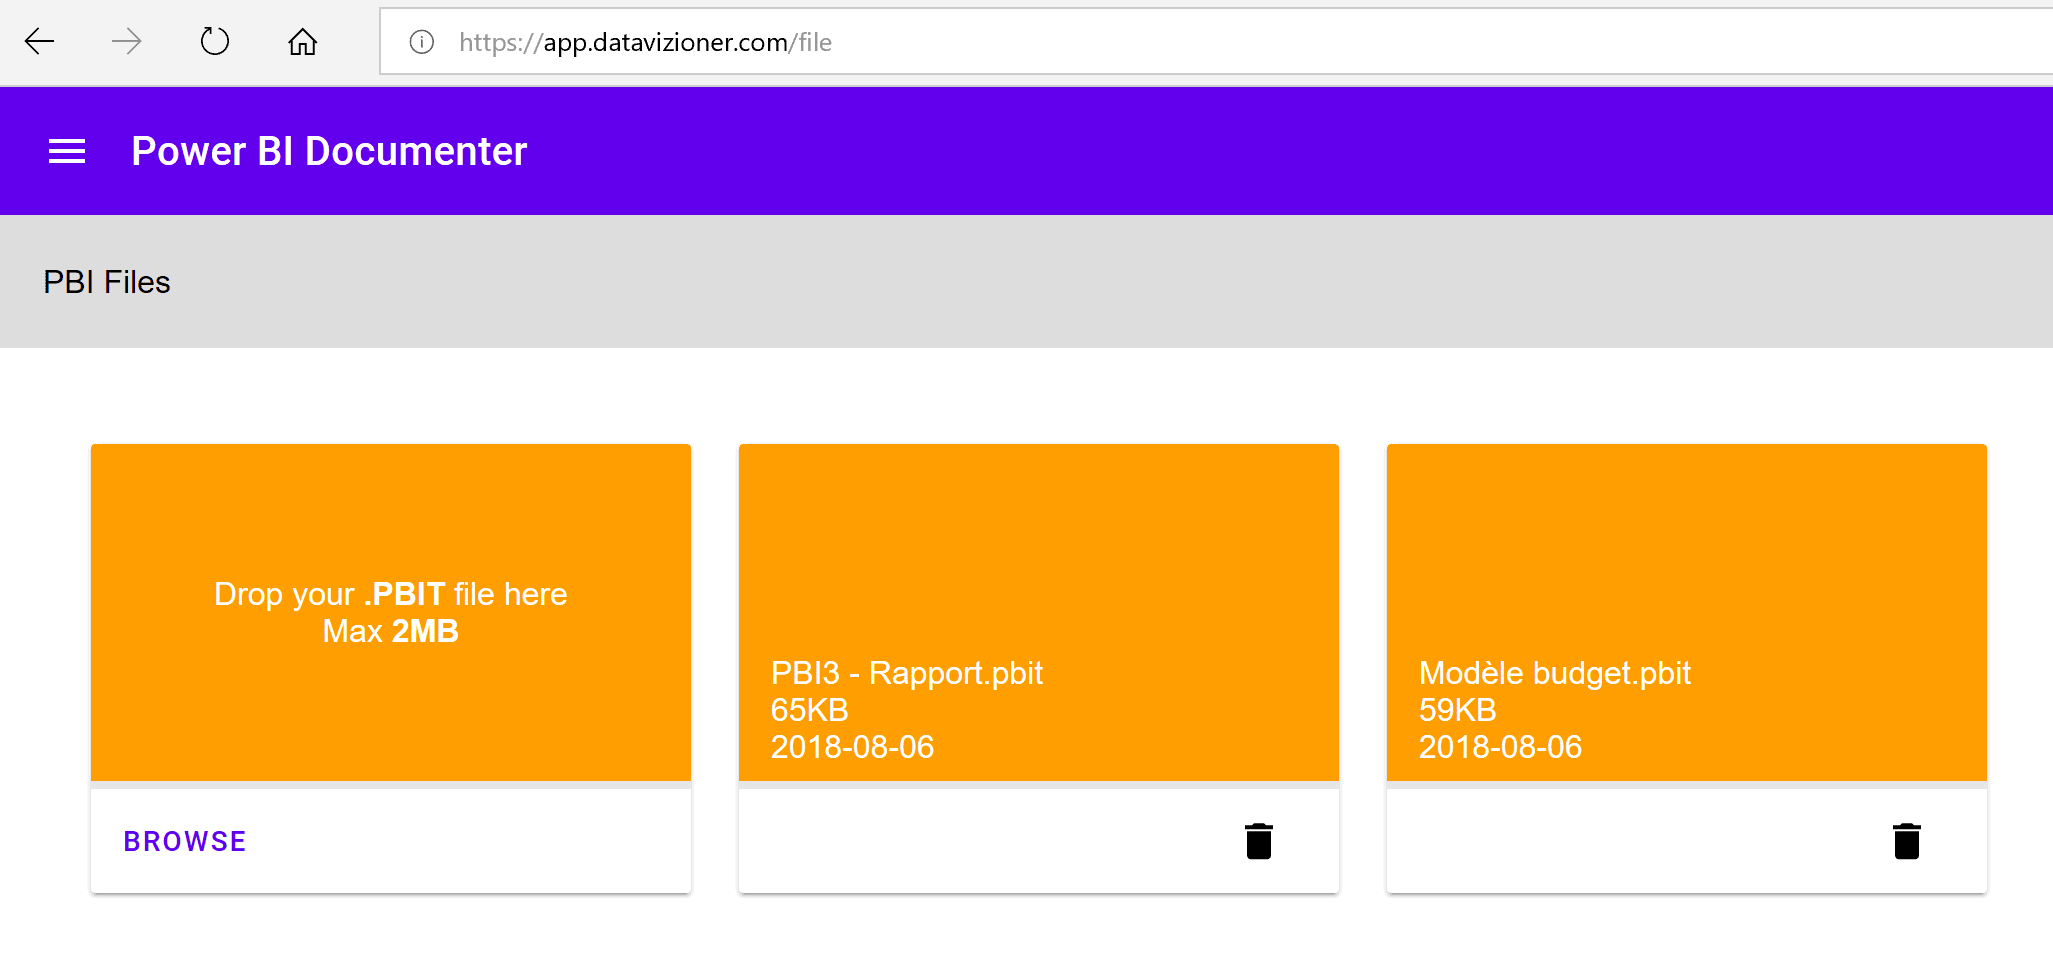 Power BI Documenter accueil